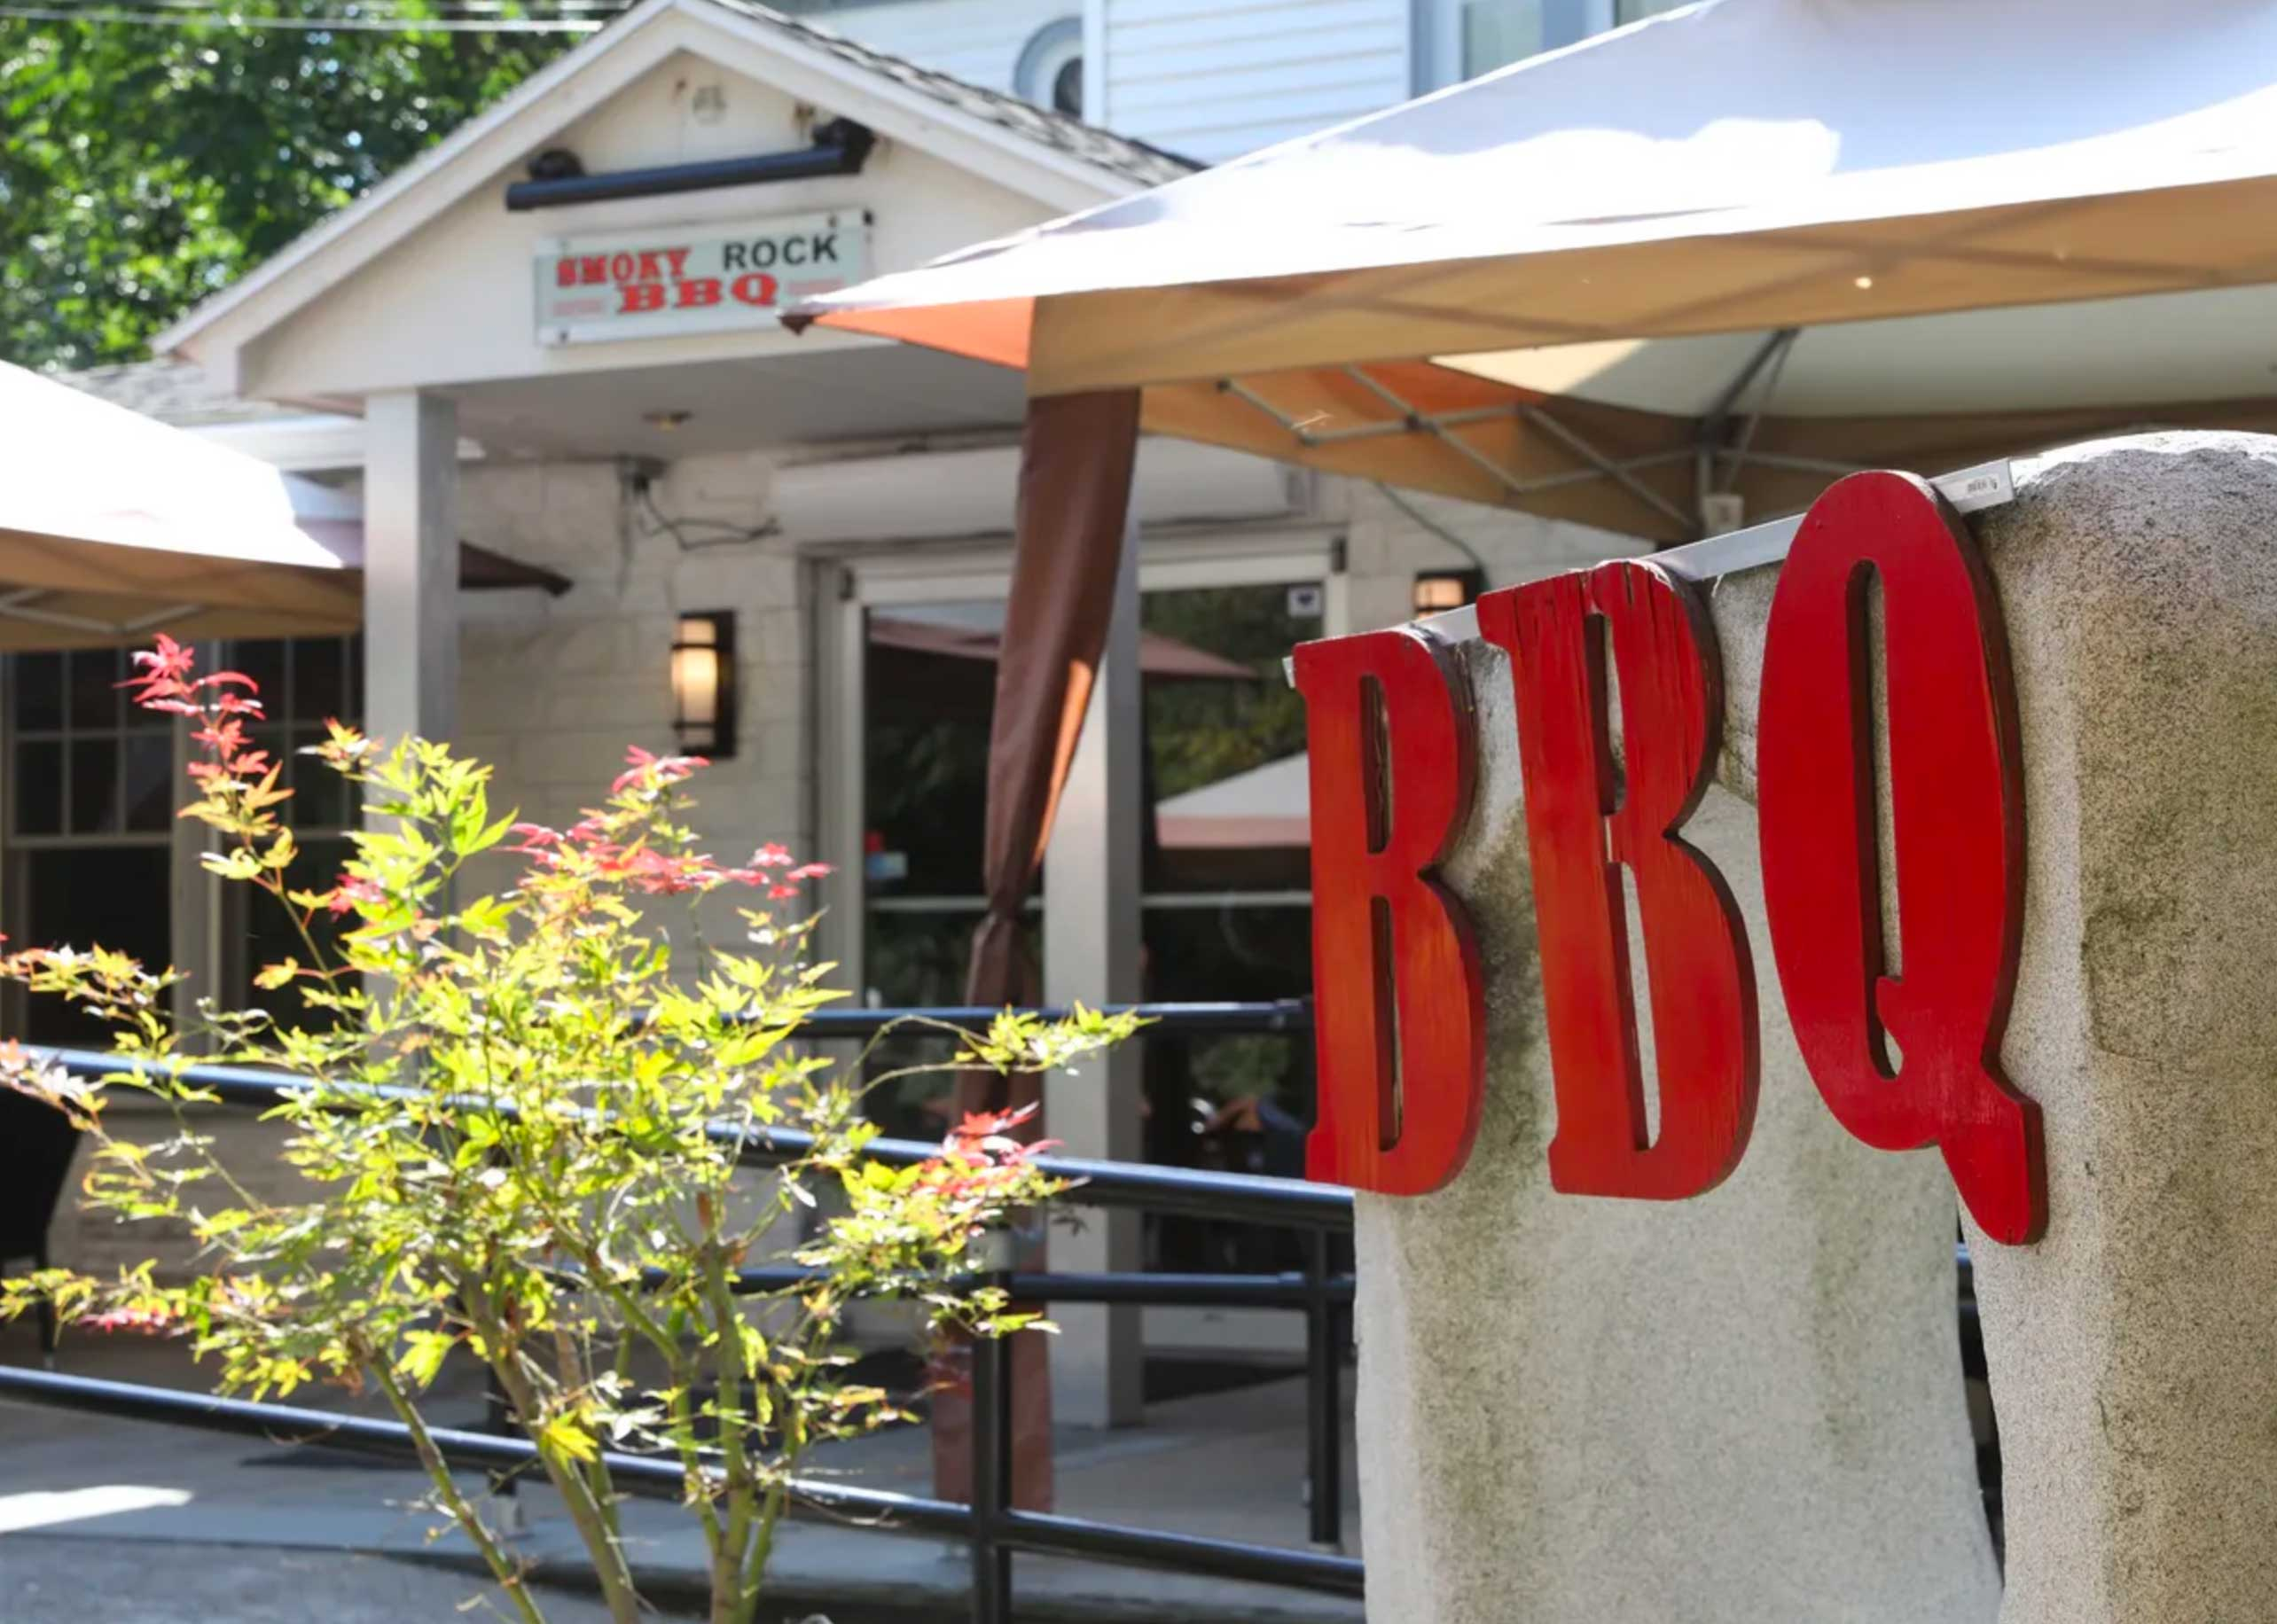 Smoky Rock BBQ in Rhinebeck on September 8, 2020.